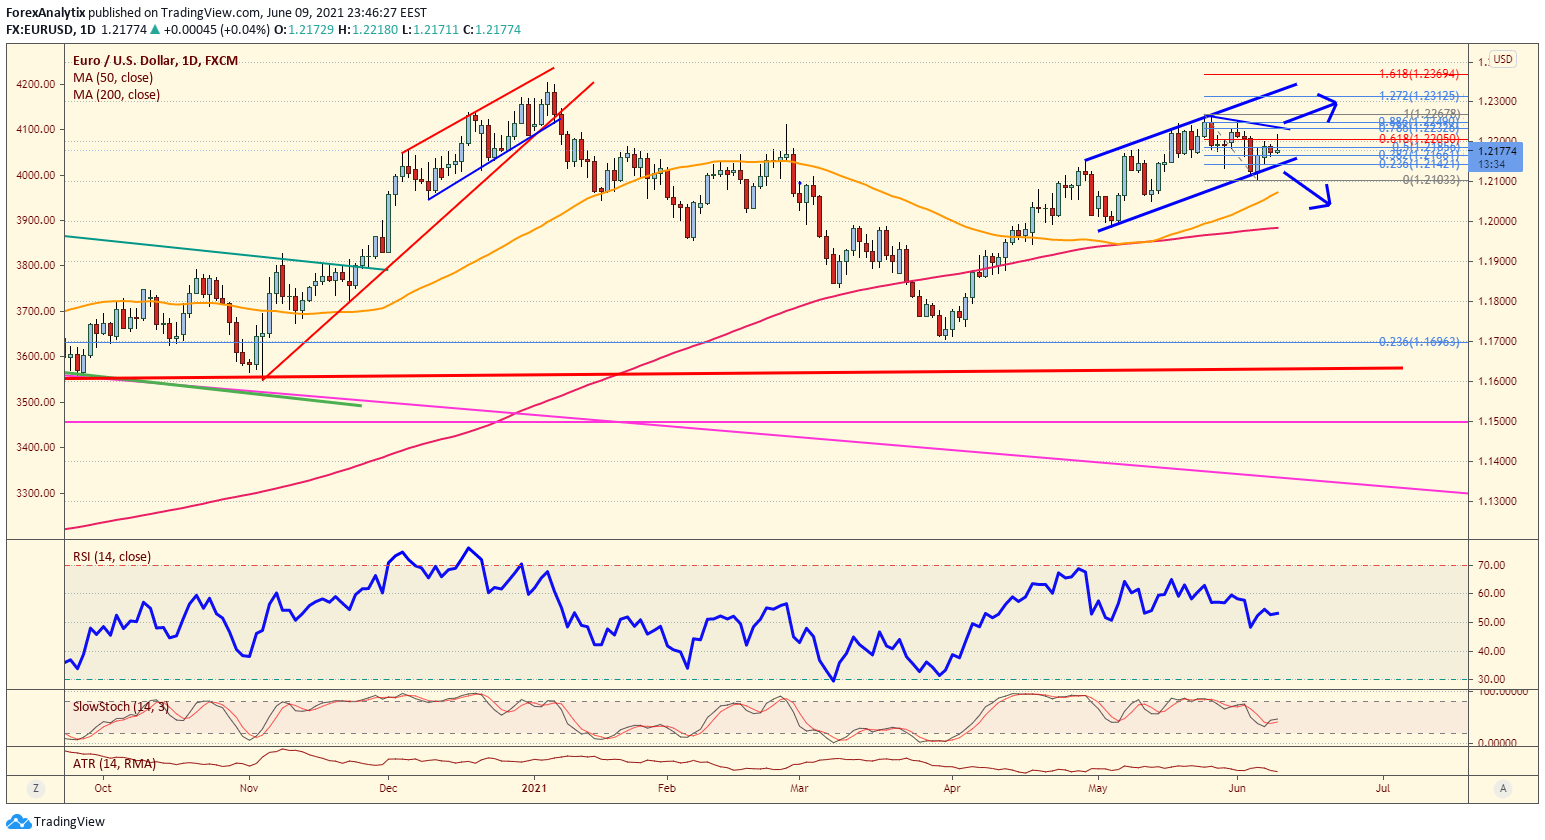 EUR/USD Daily Chart.